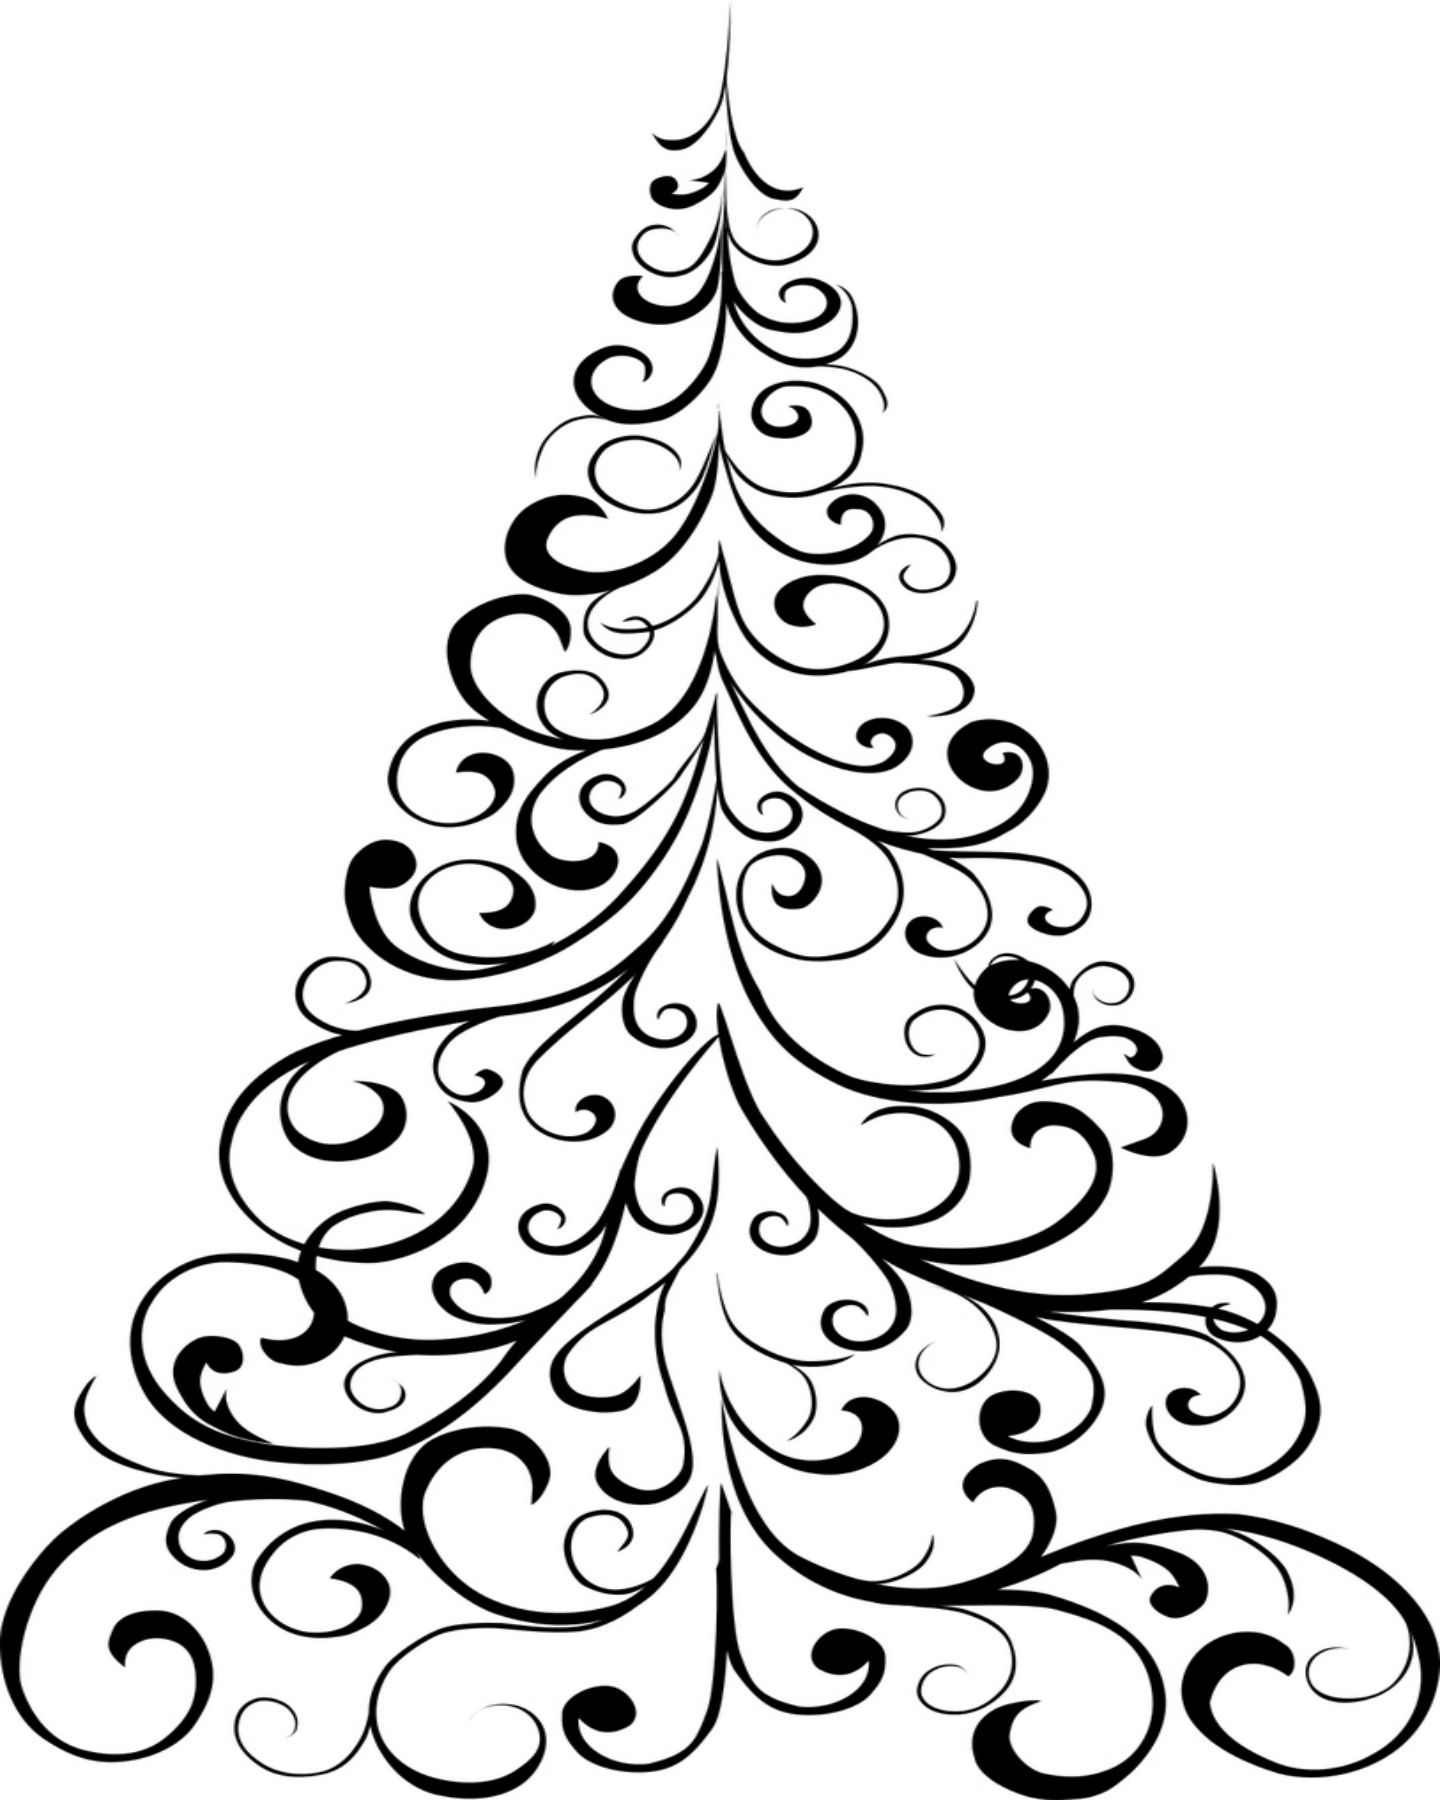 1440x1800 Free Printable Christmas Tree Coloring Page Holly Jolly X Mas